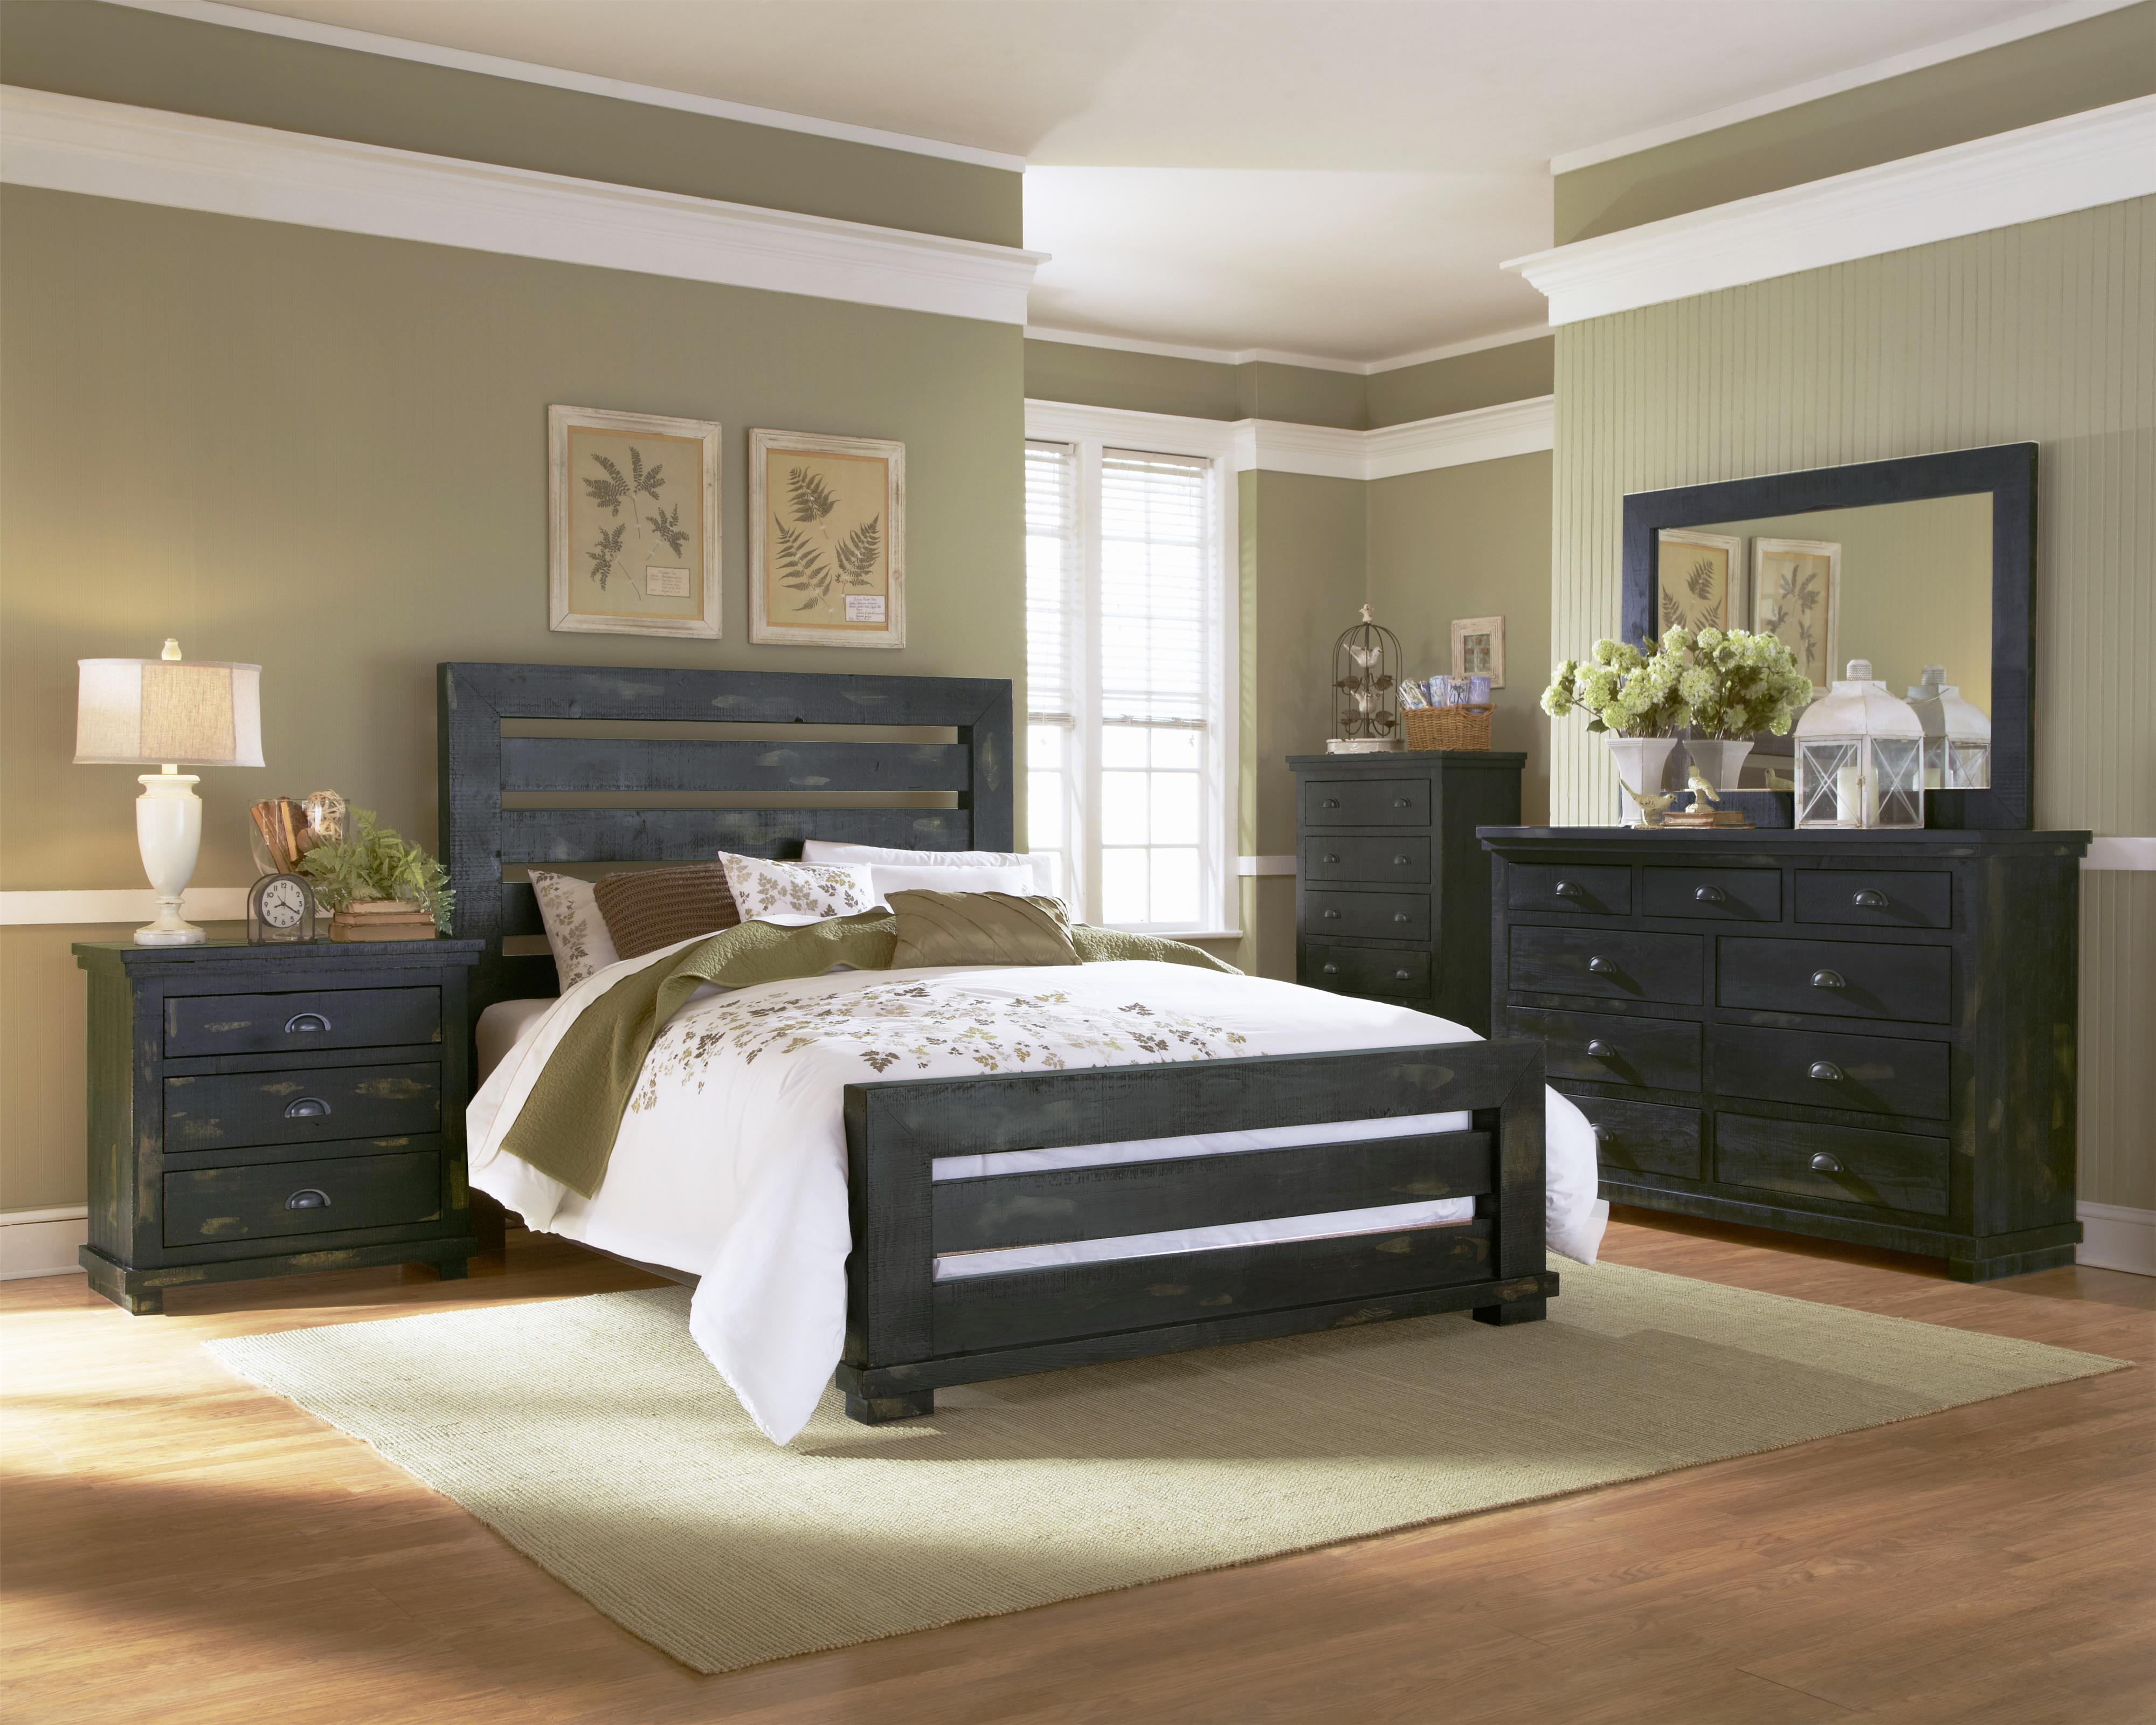 Perfect Progressive Furniture Willow King Bedroom Group   Item Number: P612 K Bedroom  Group 1